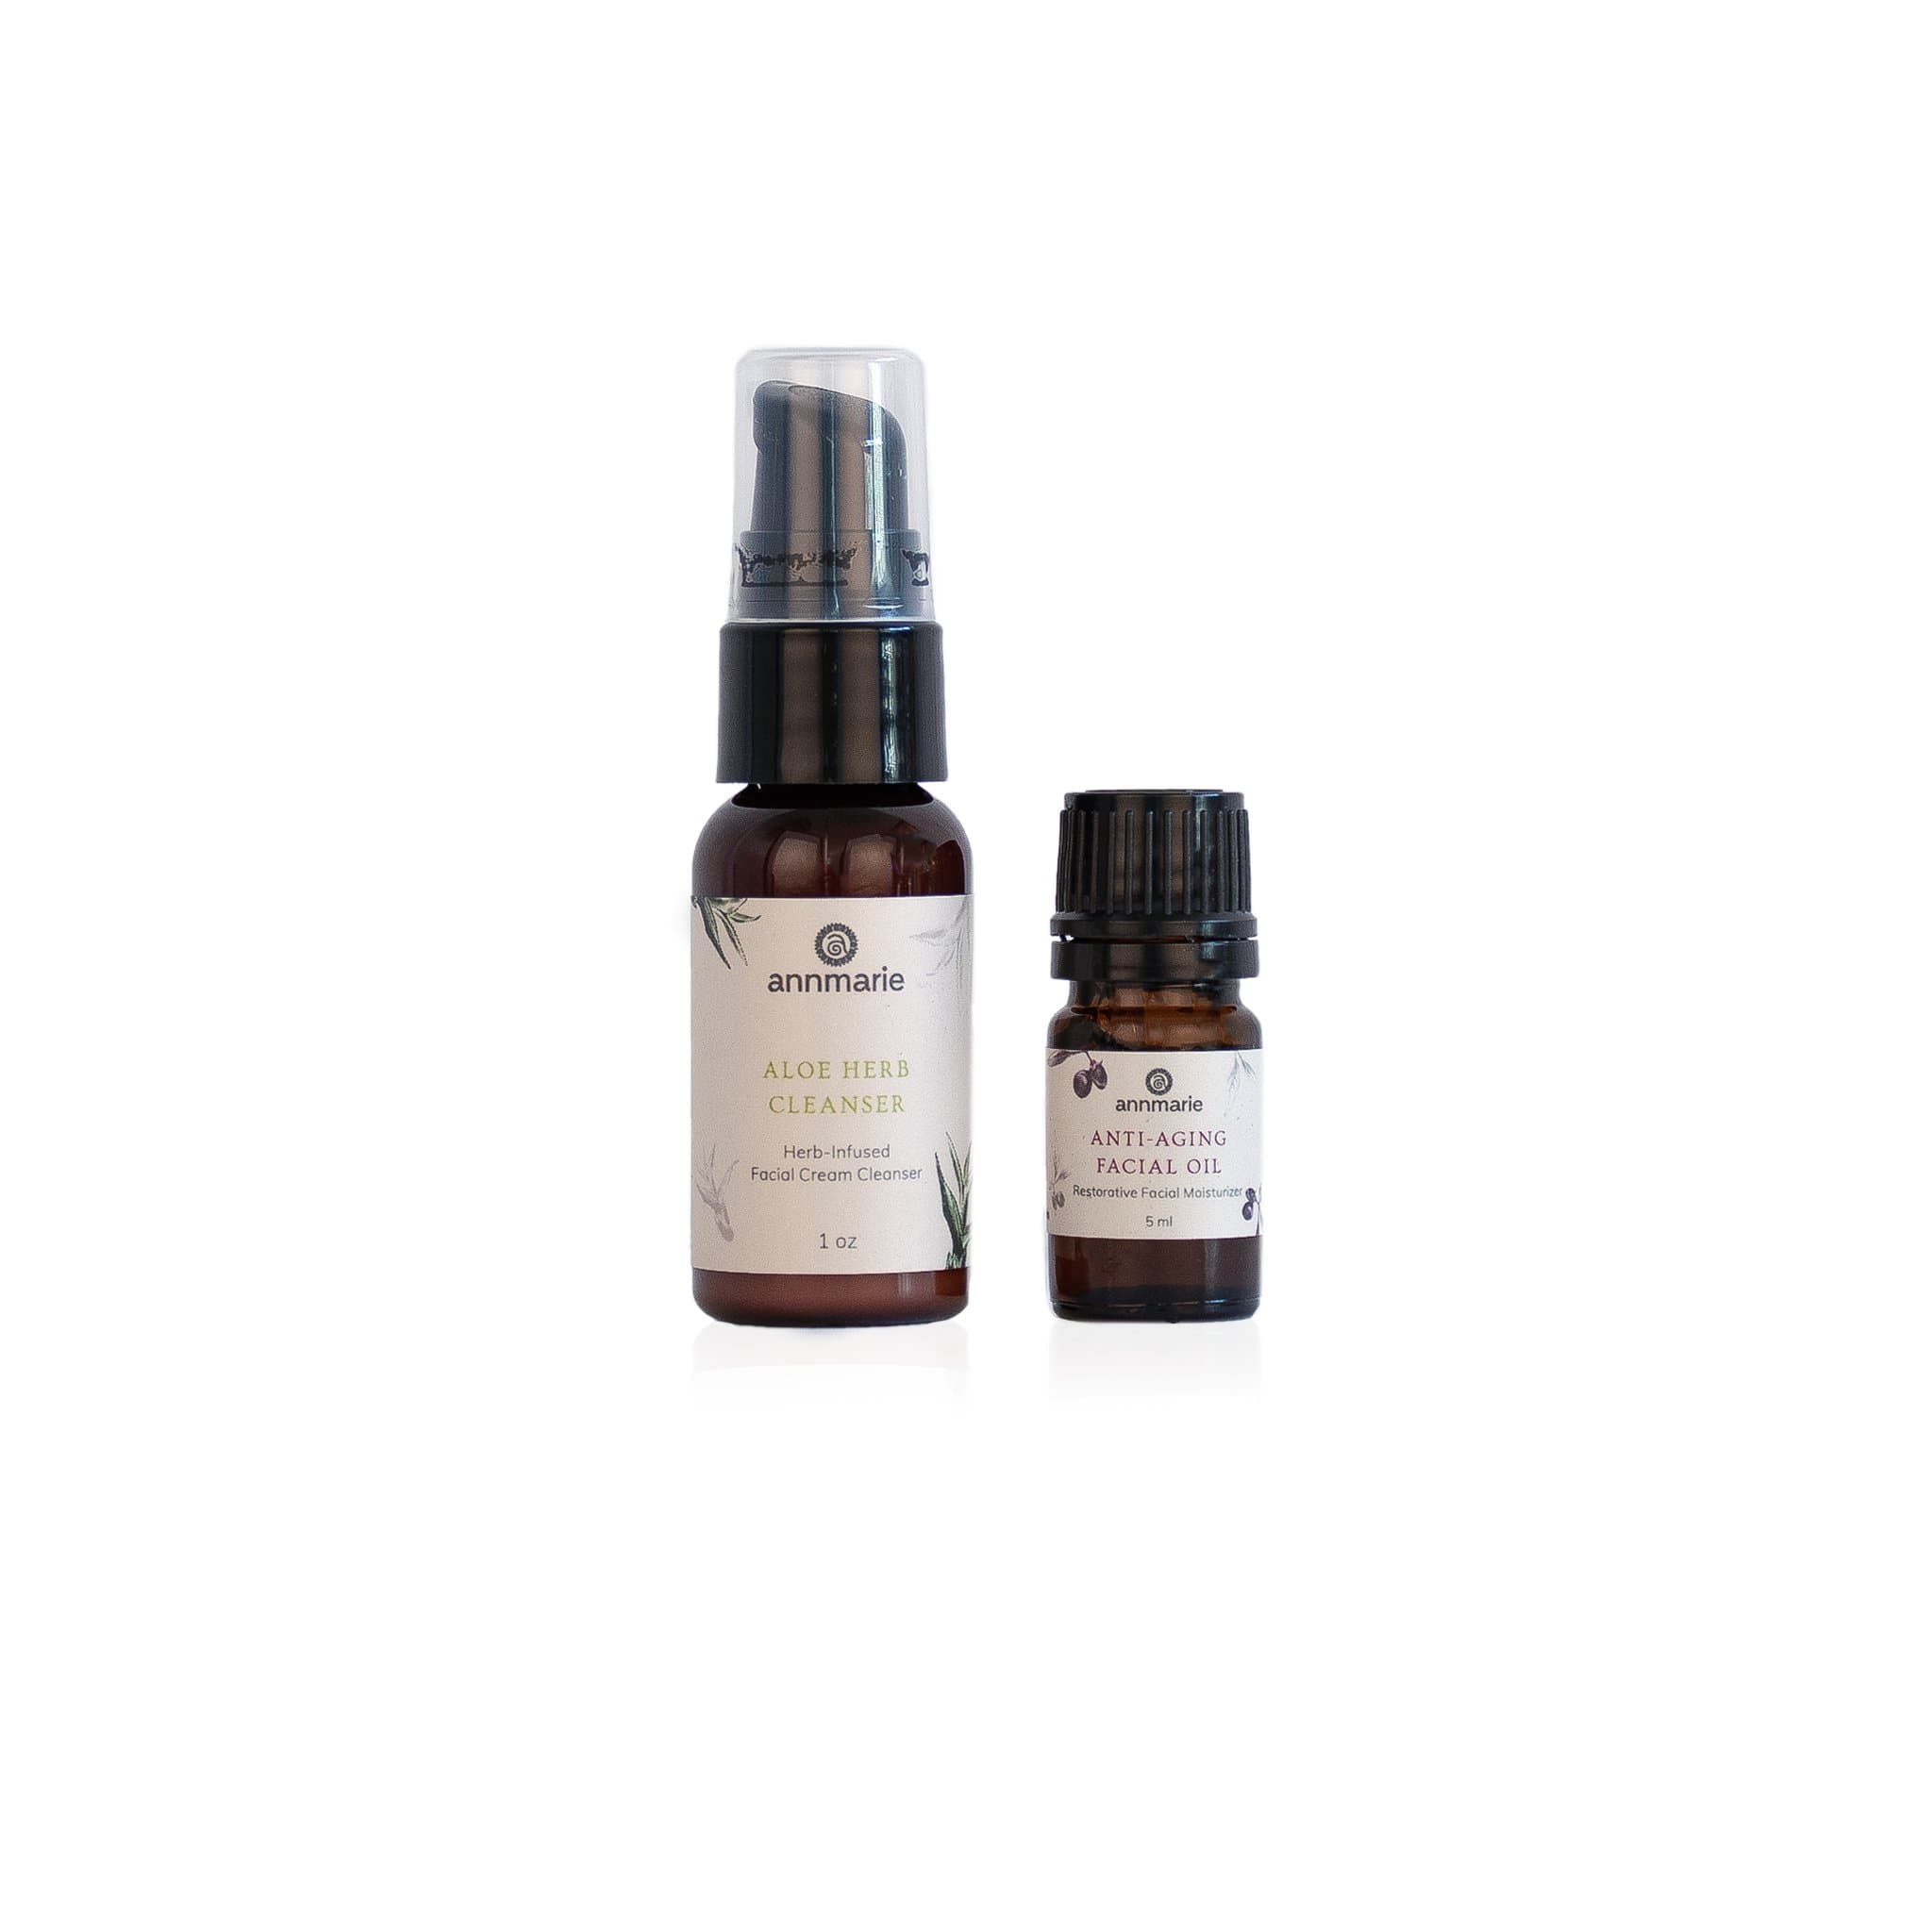 Aloe Herb Cleanser and Anti-Aging Facial Oil Travel Duo